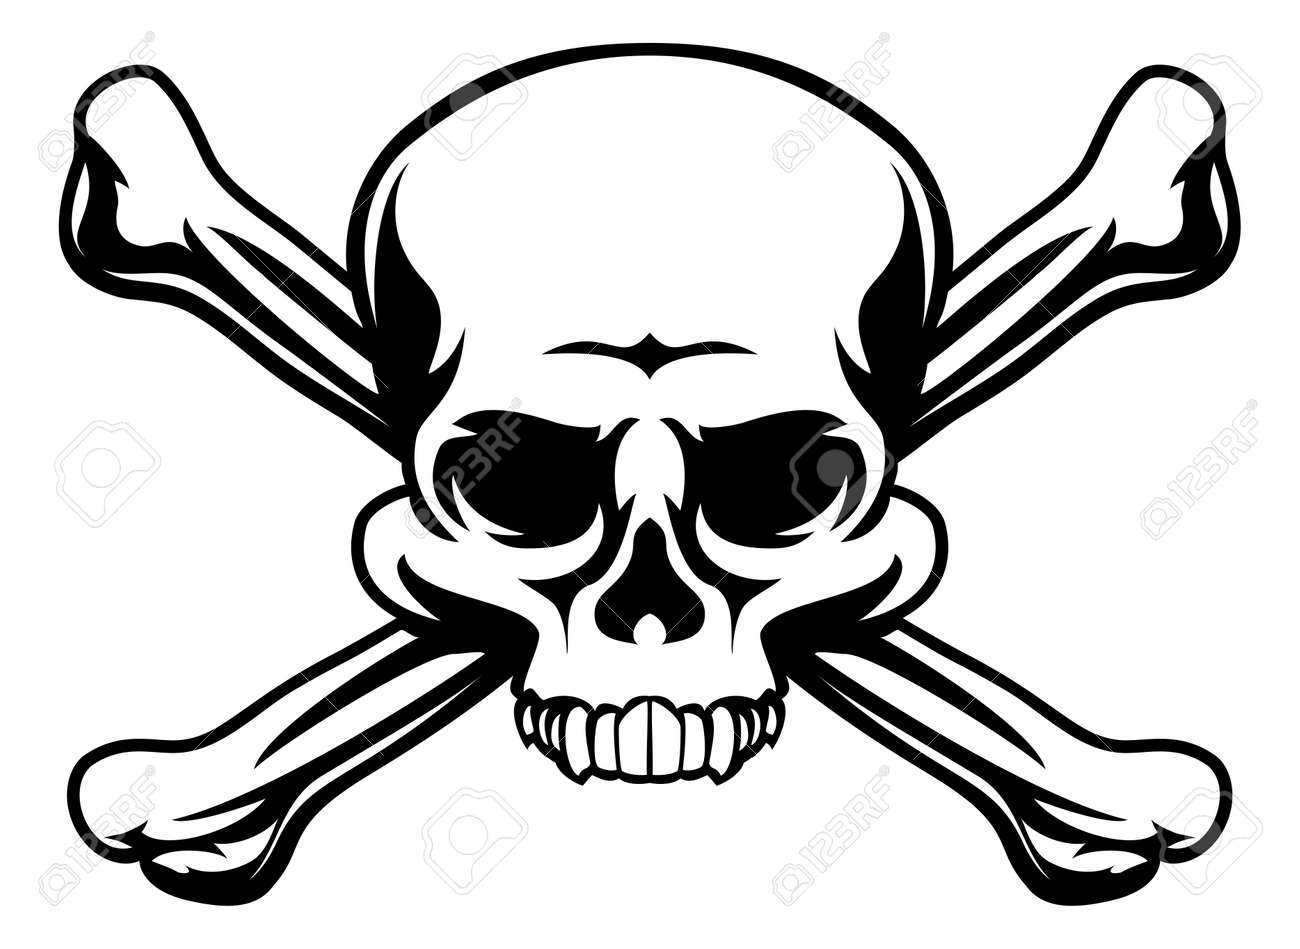 5 426 jolly roger stock vector illustration and royalty free jolly rh 123rf com jolly roger clipart free